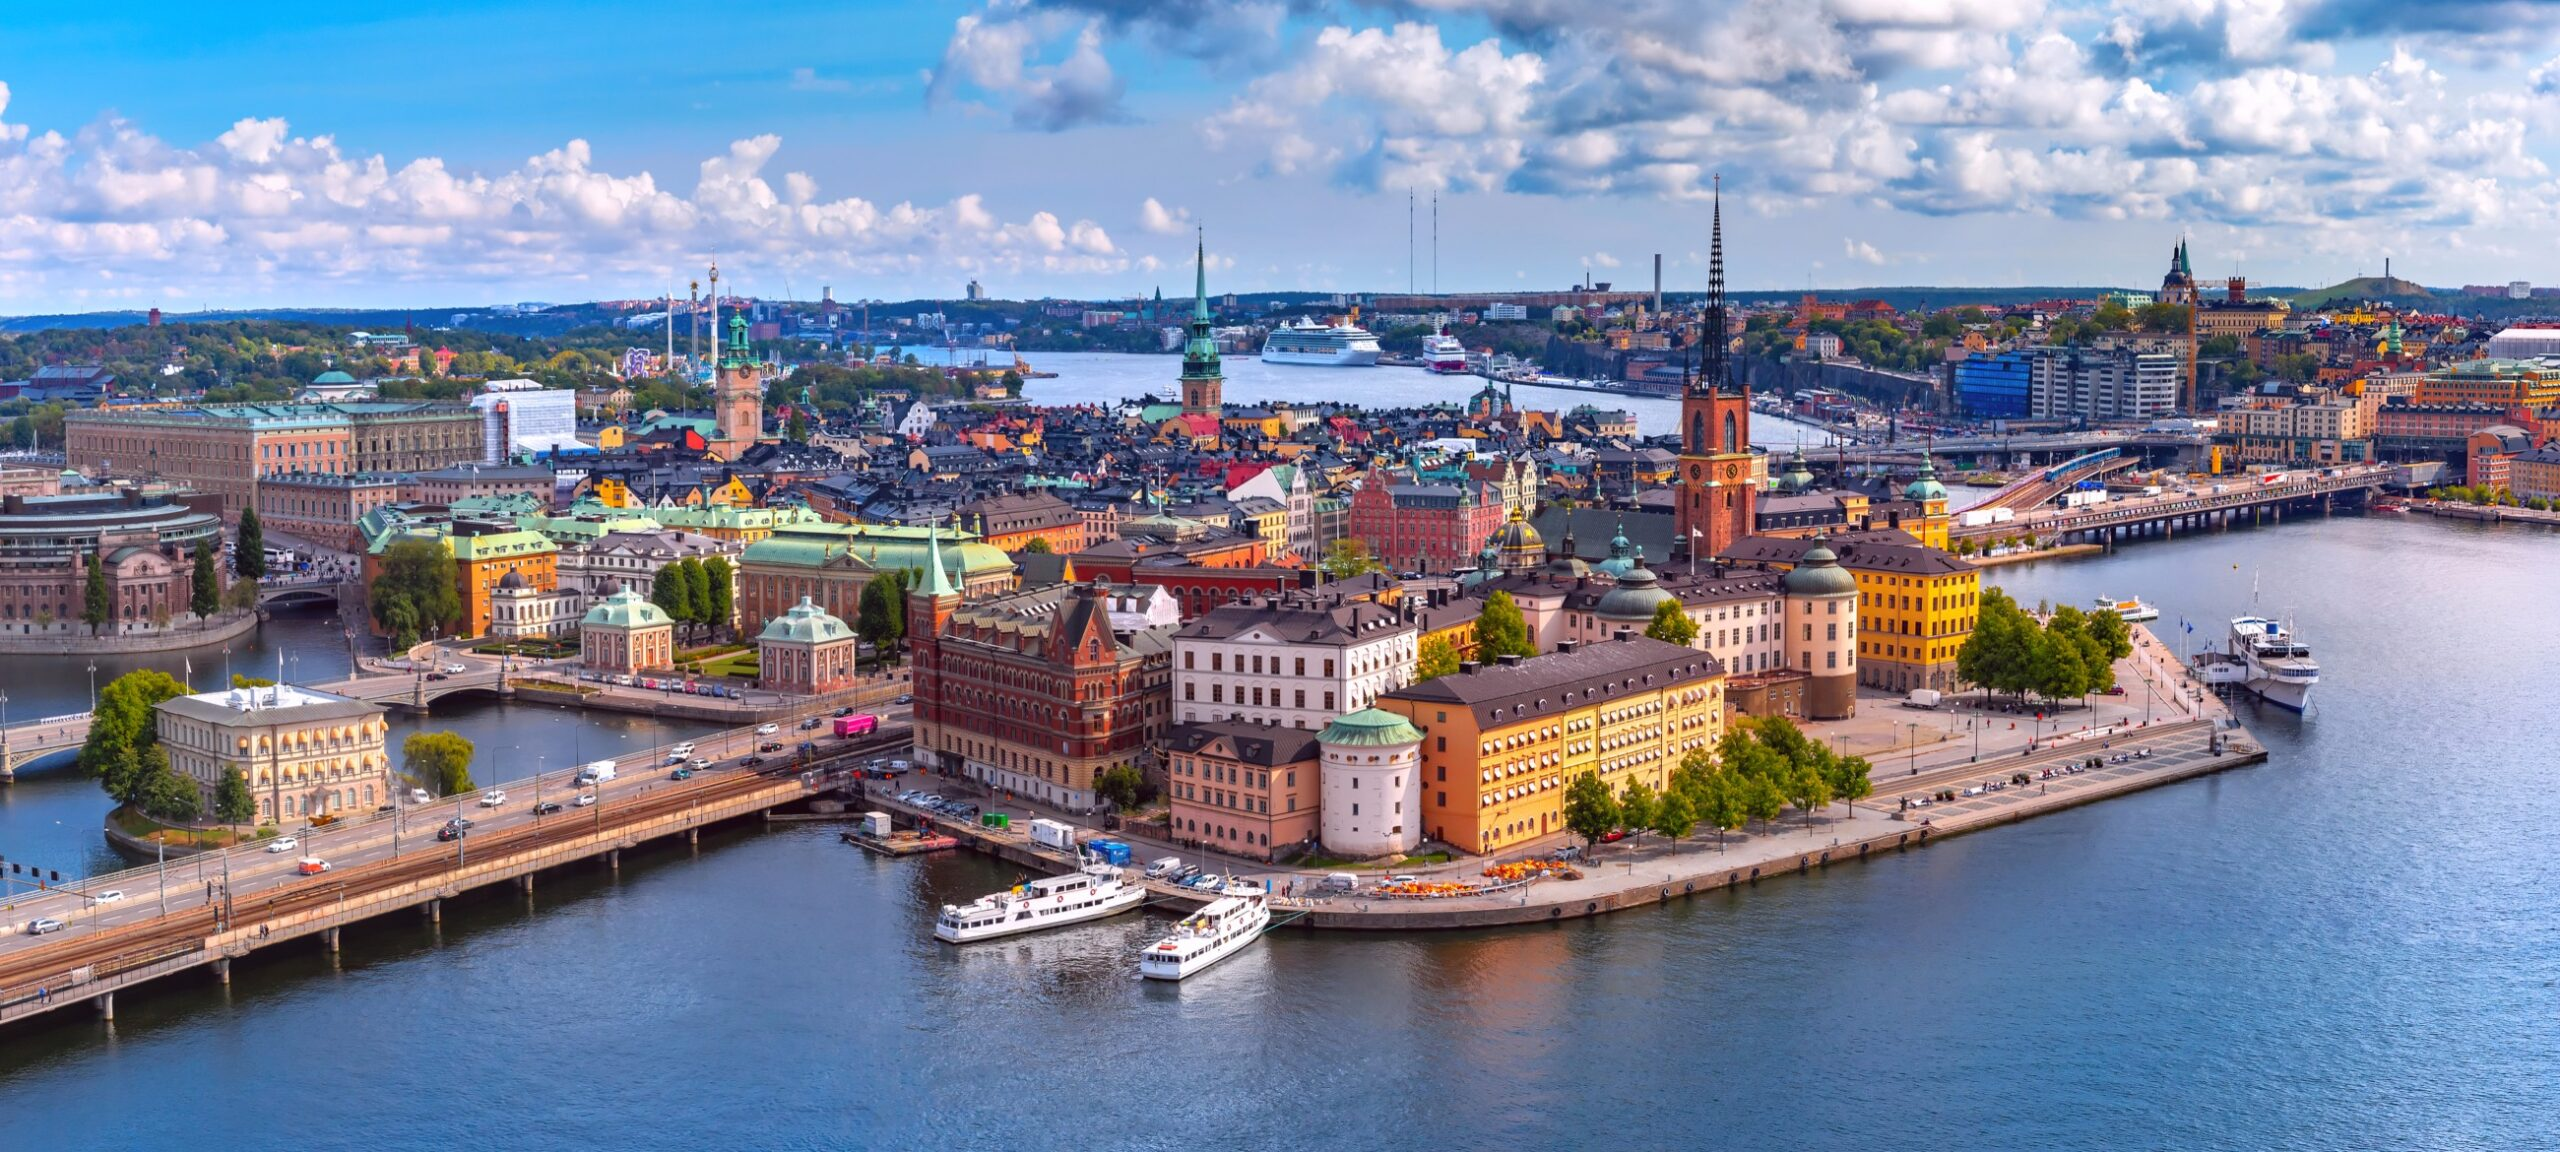 Stockholm: The Scandinavian City of Islands and More